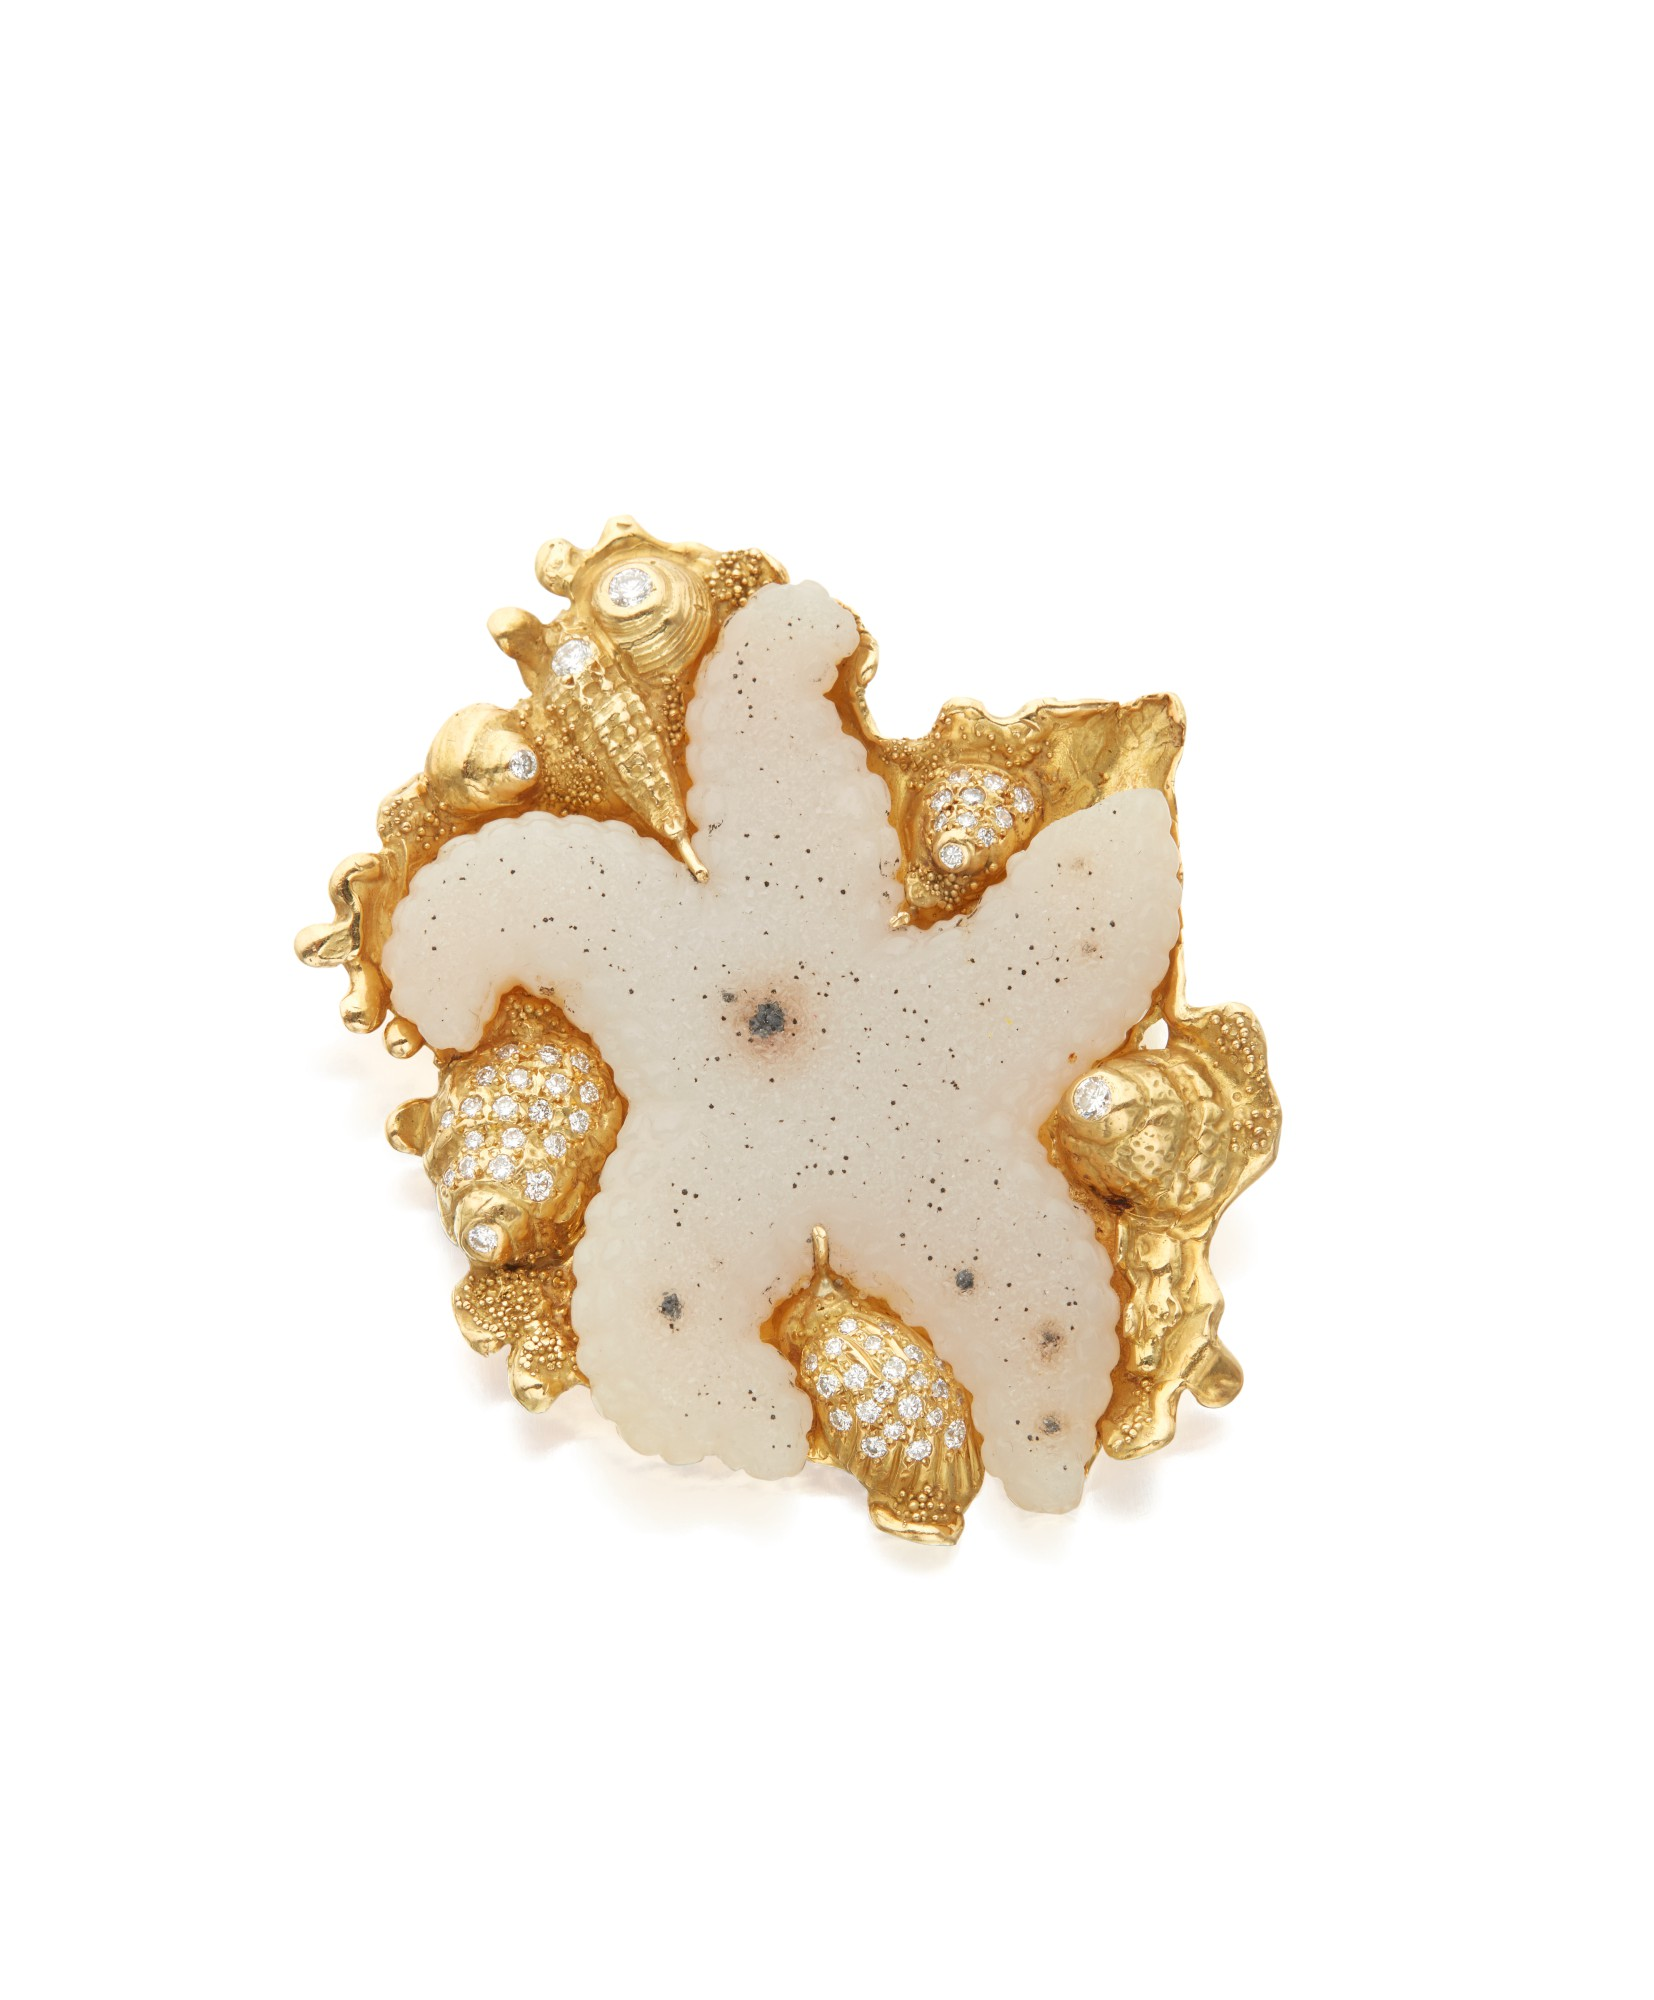 DRUSY QUARTZ AND DIAMOND BROOCH, ELIZABETH GAGE